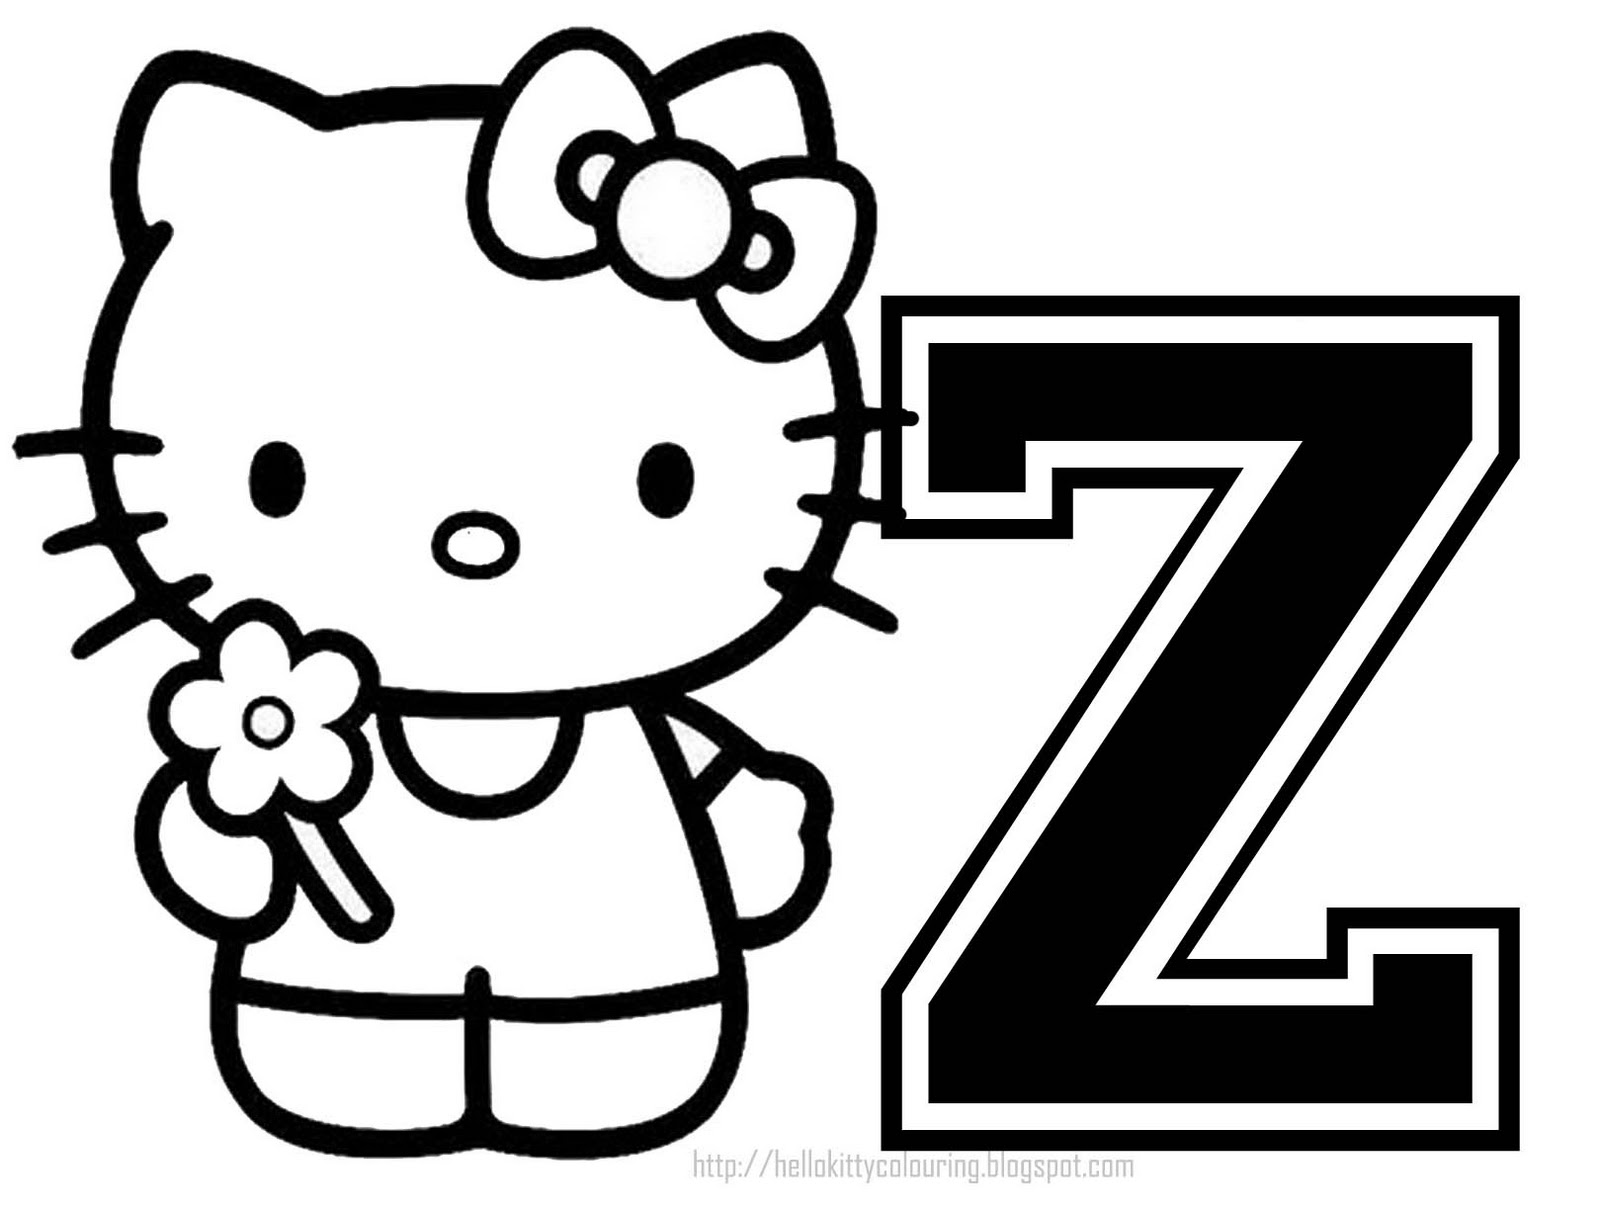 Coloring sheet letter d - Personalized Coloring Page Initial Letter Hello Kitty